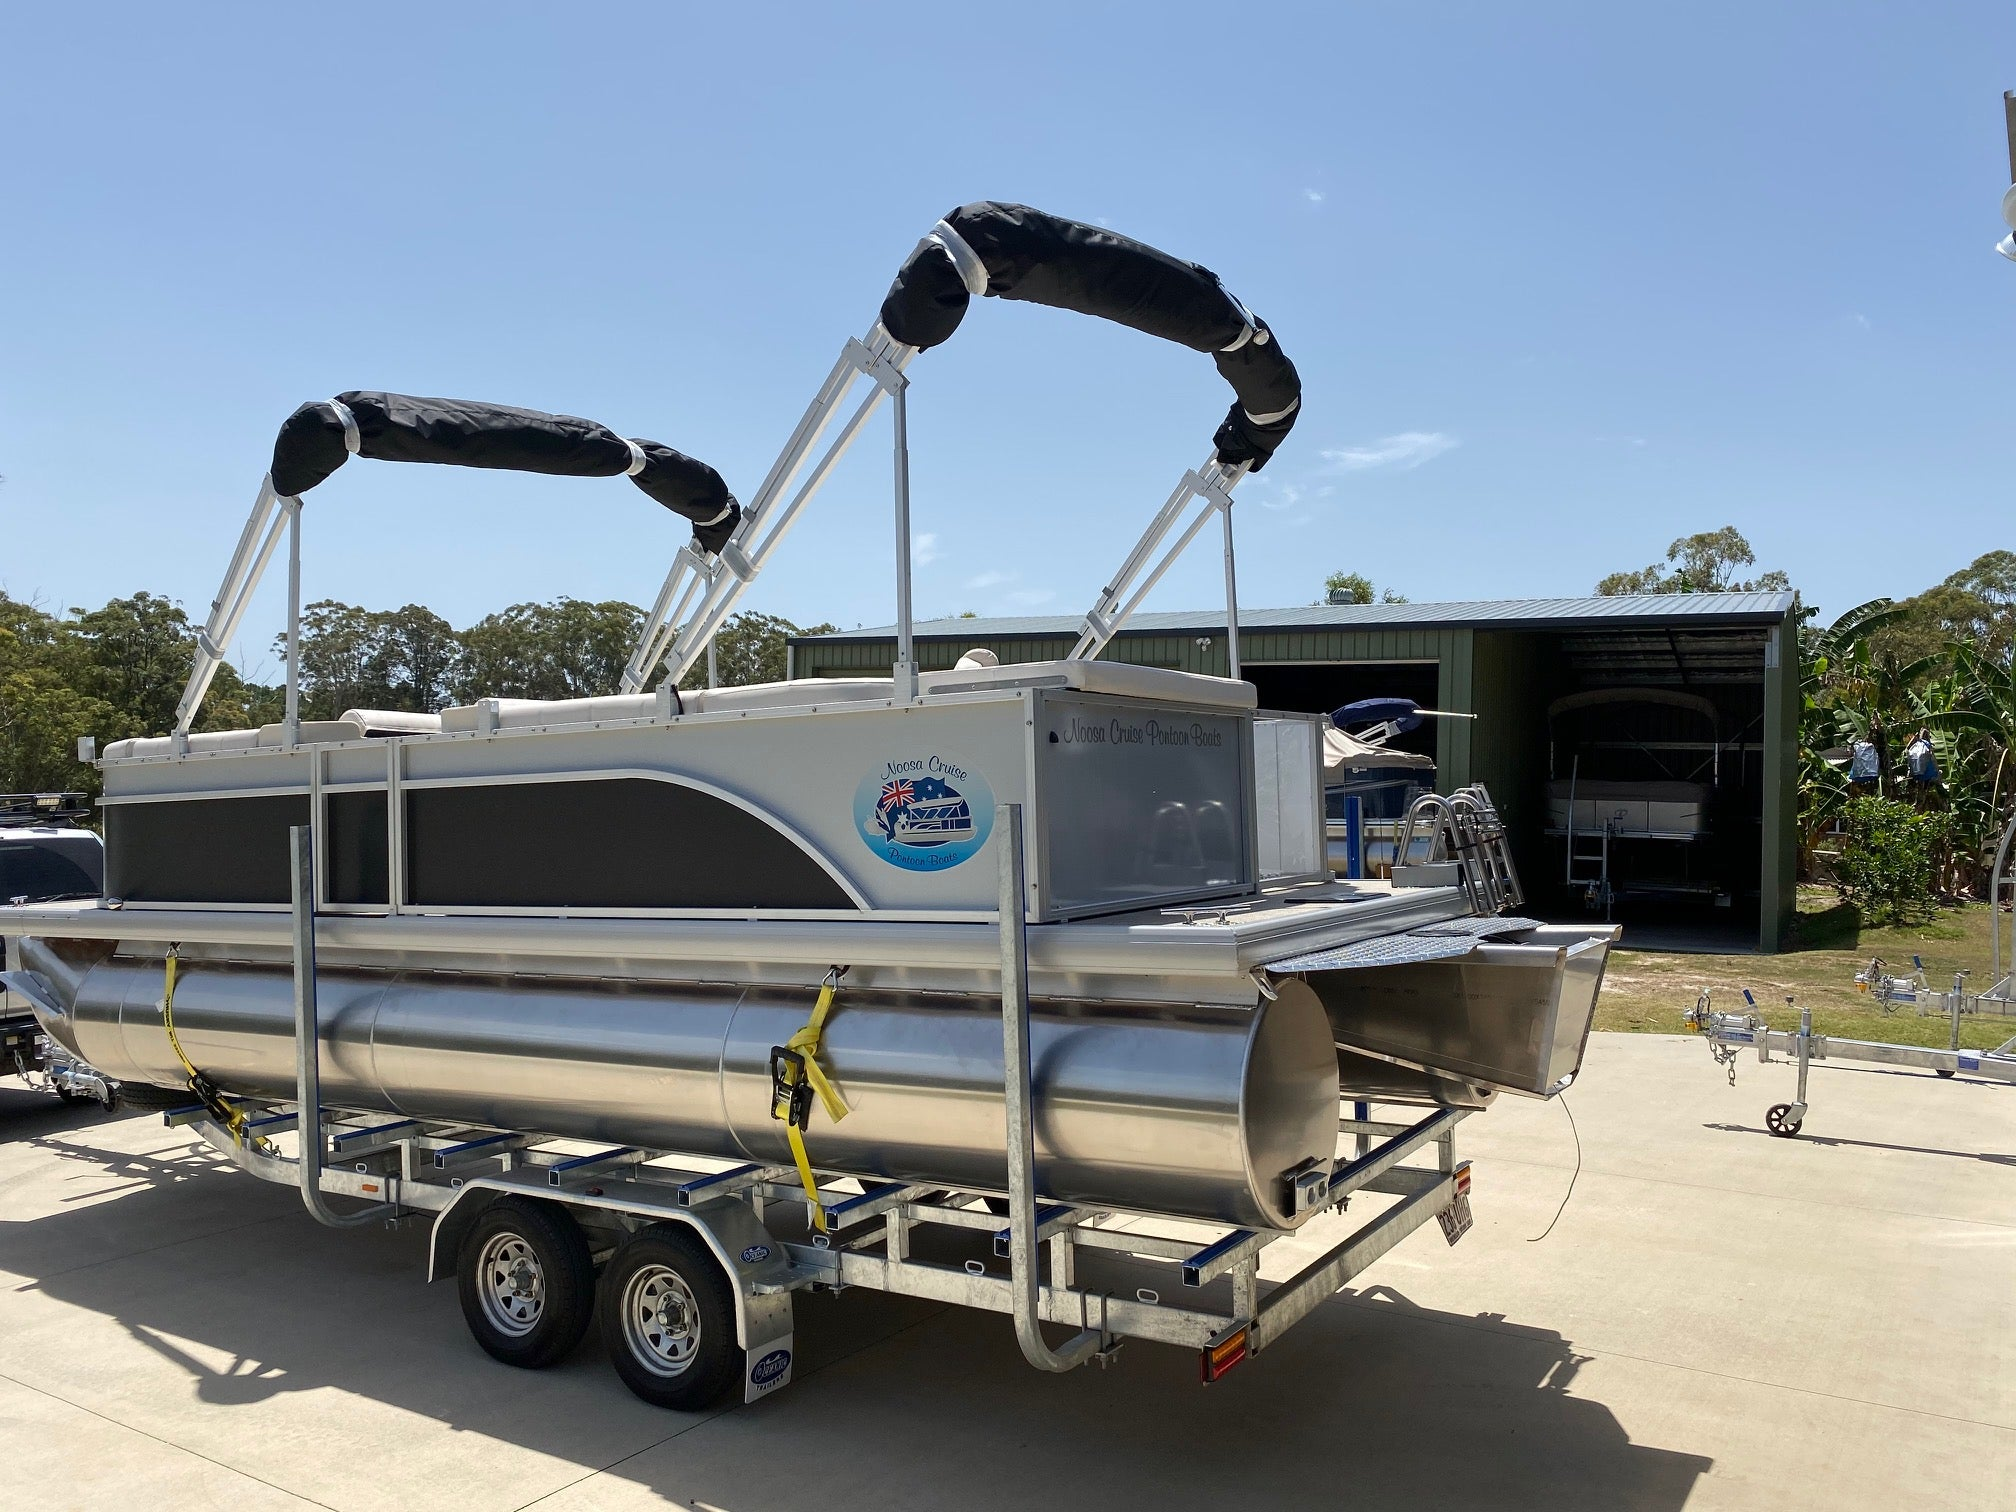 Pontoon Boat Trailers - (Stocks of new and second hand vary) Australian made trailers